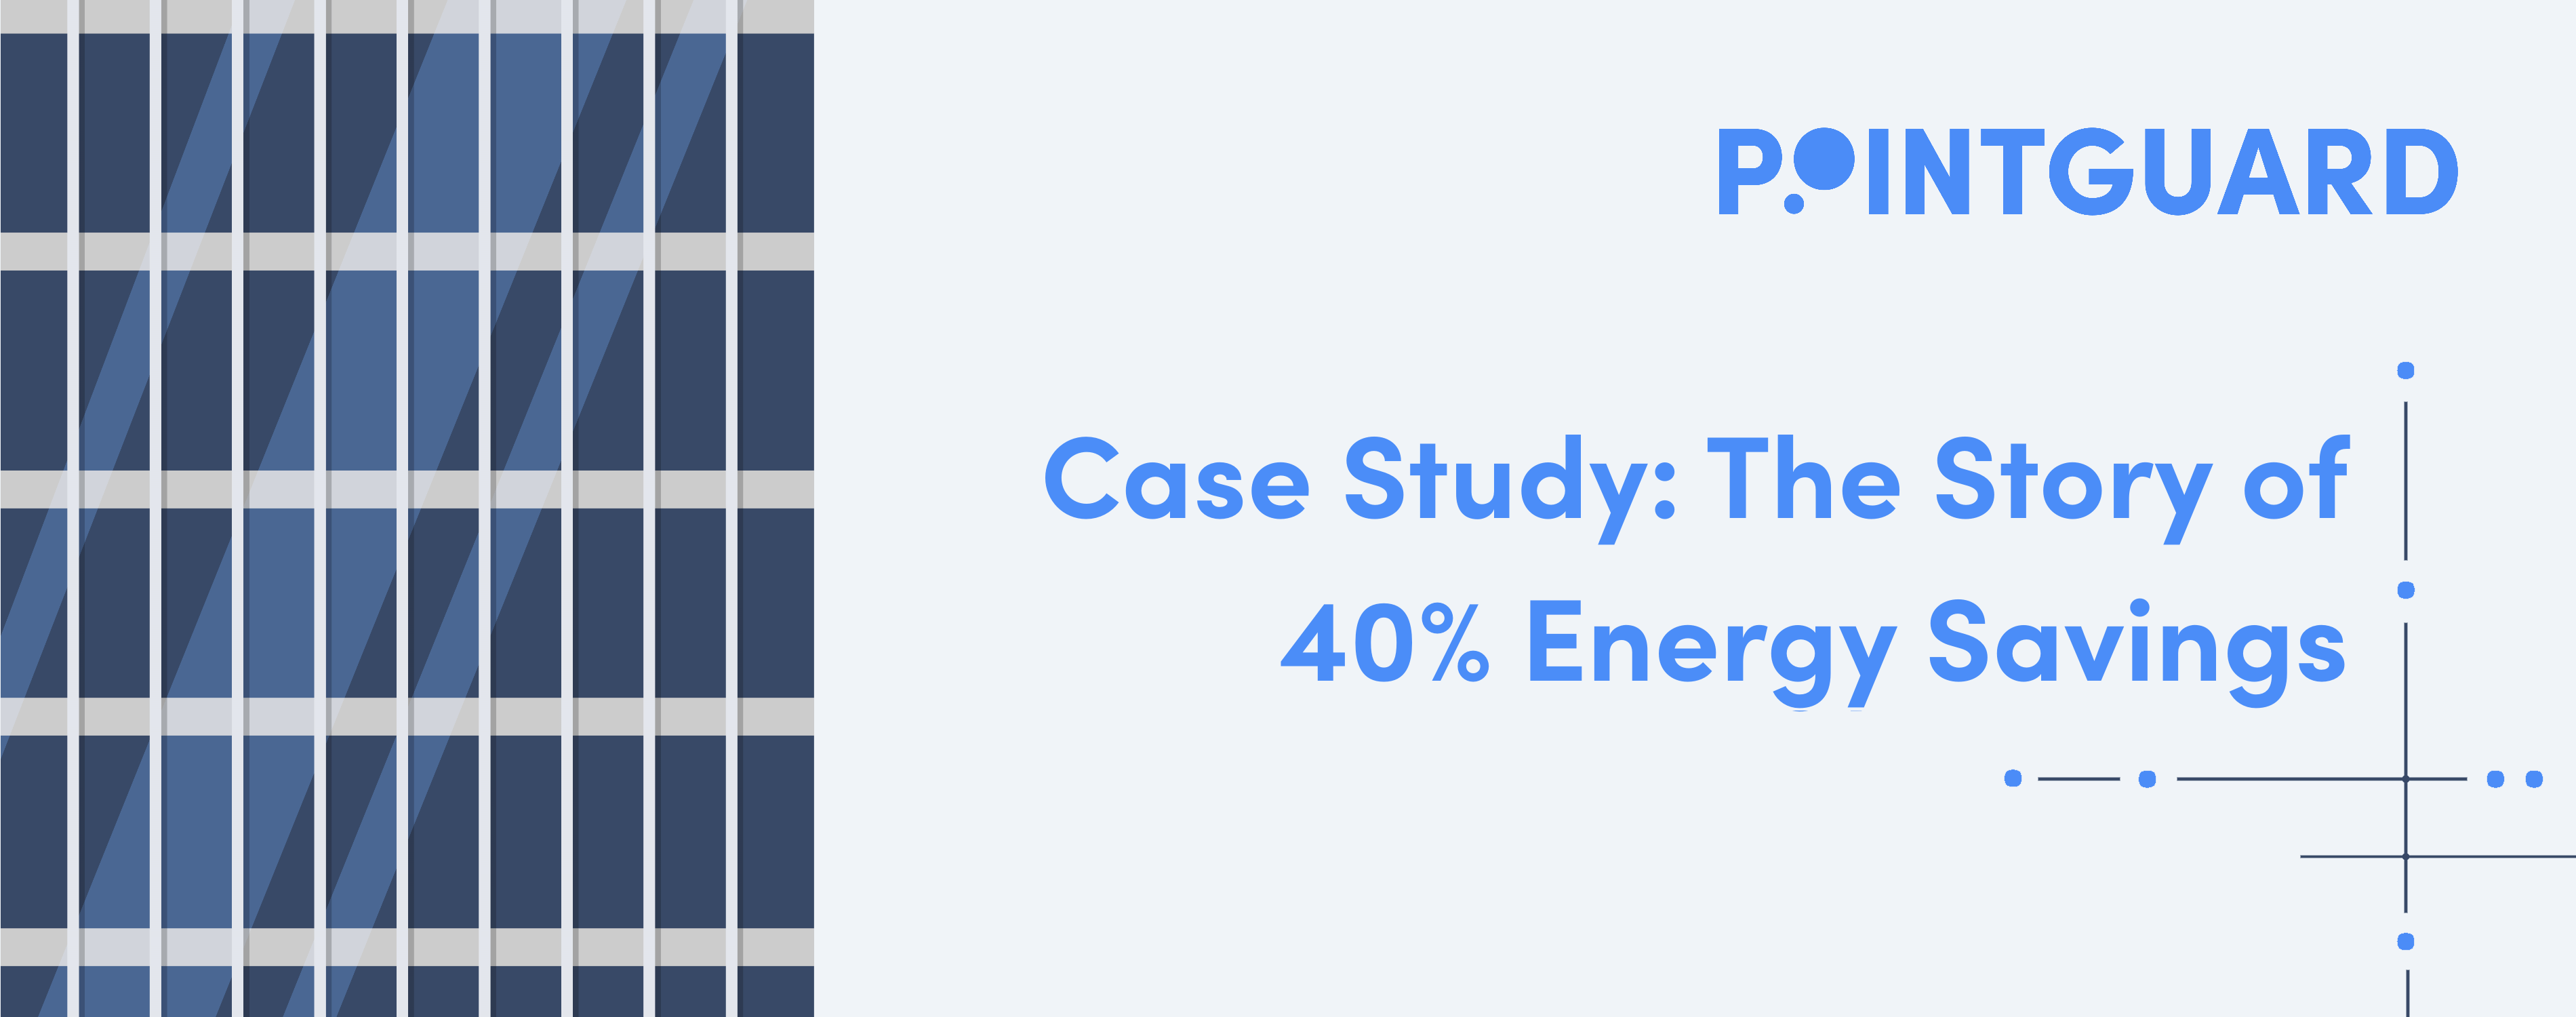 PointGuard Case Study: The Story of 40% Energy Savings